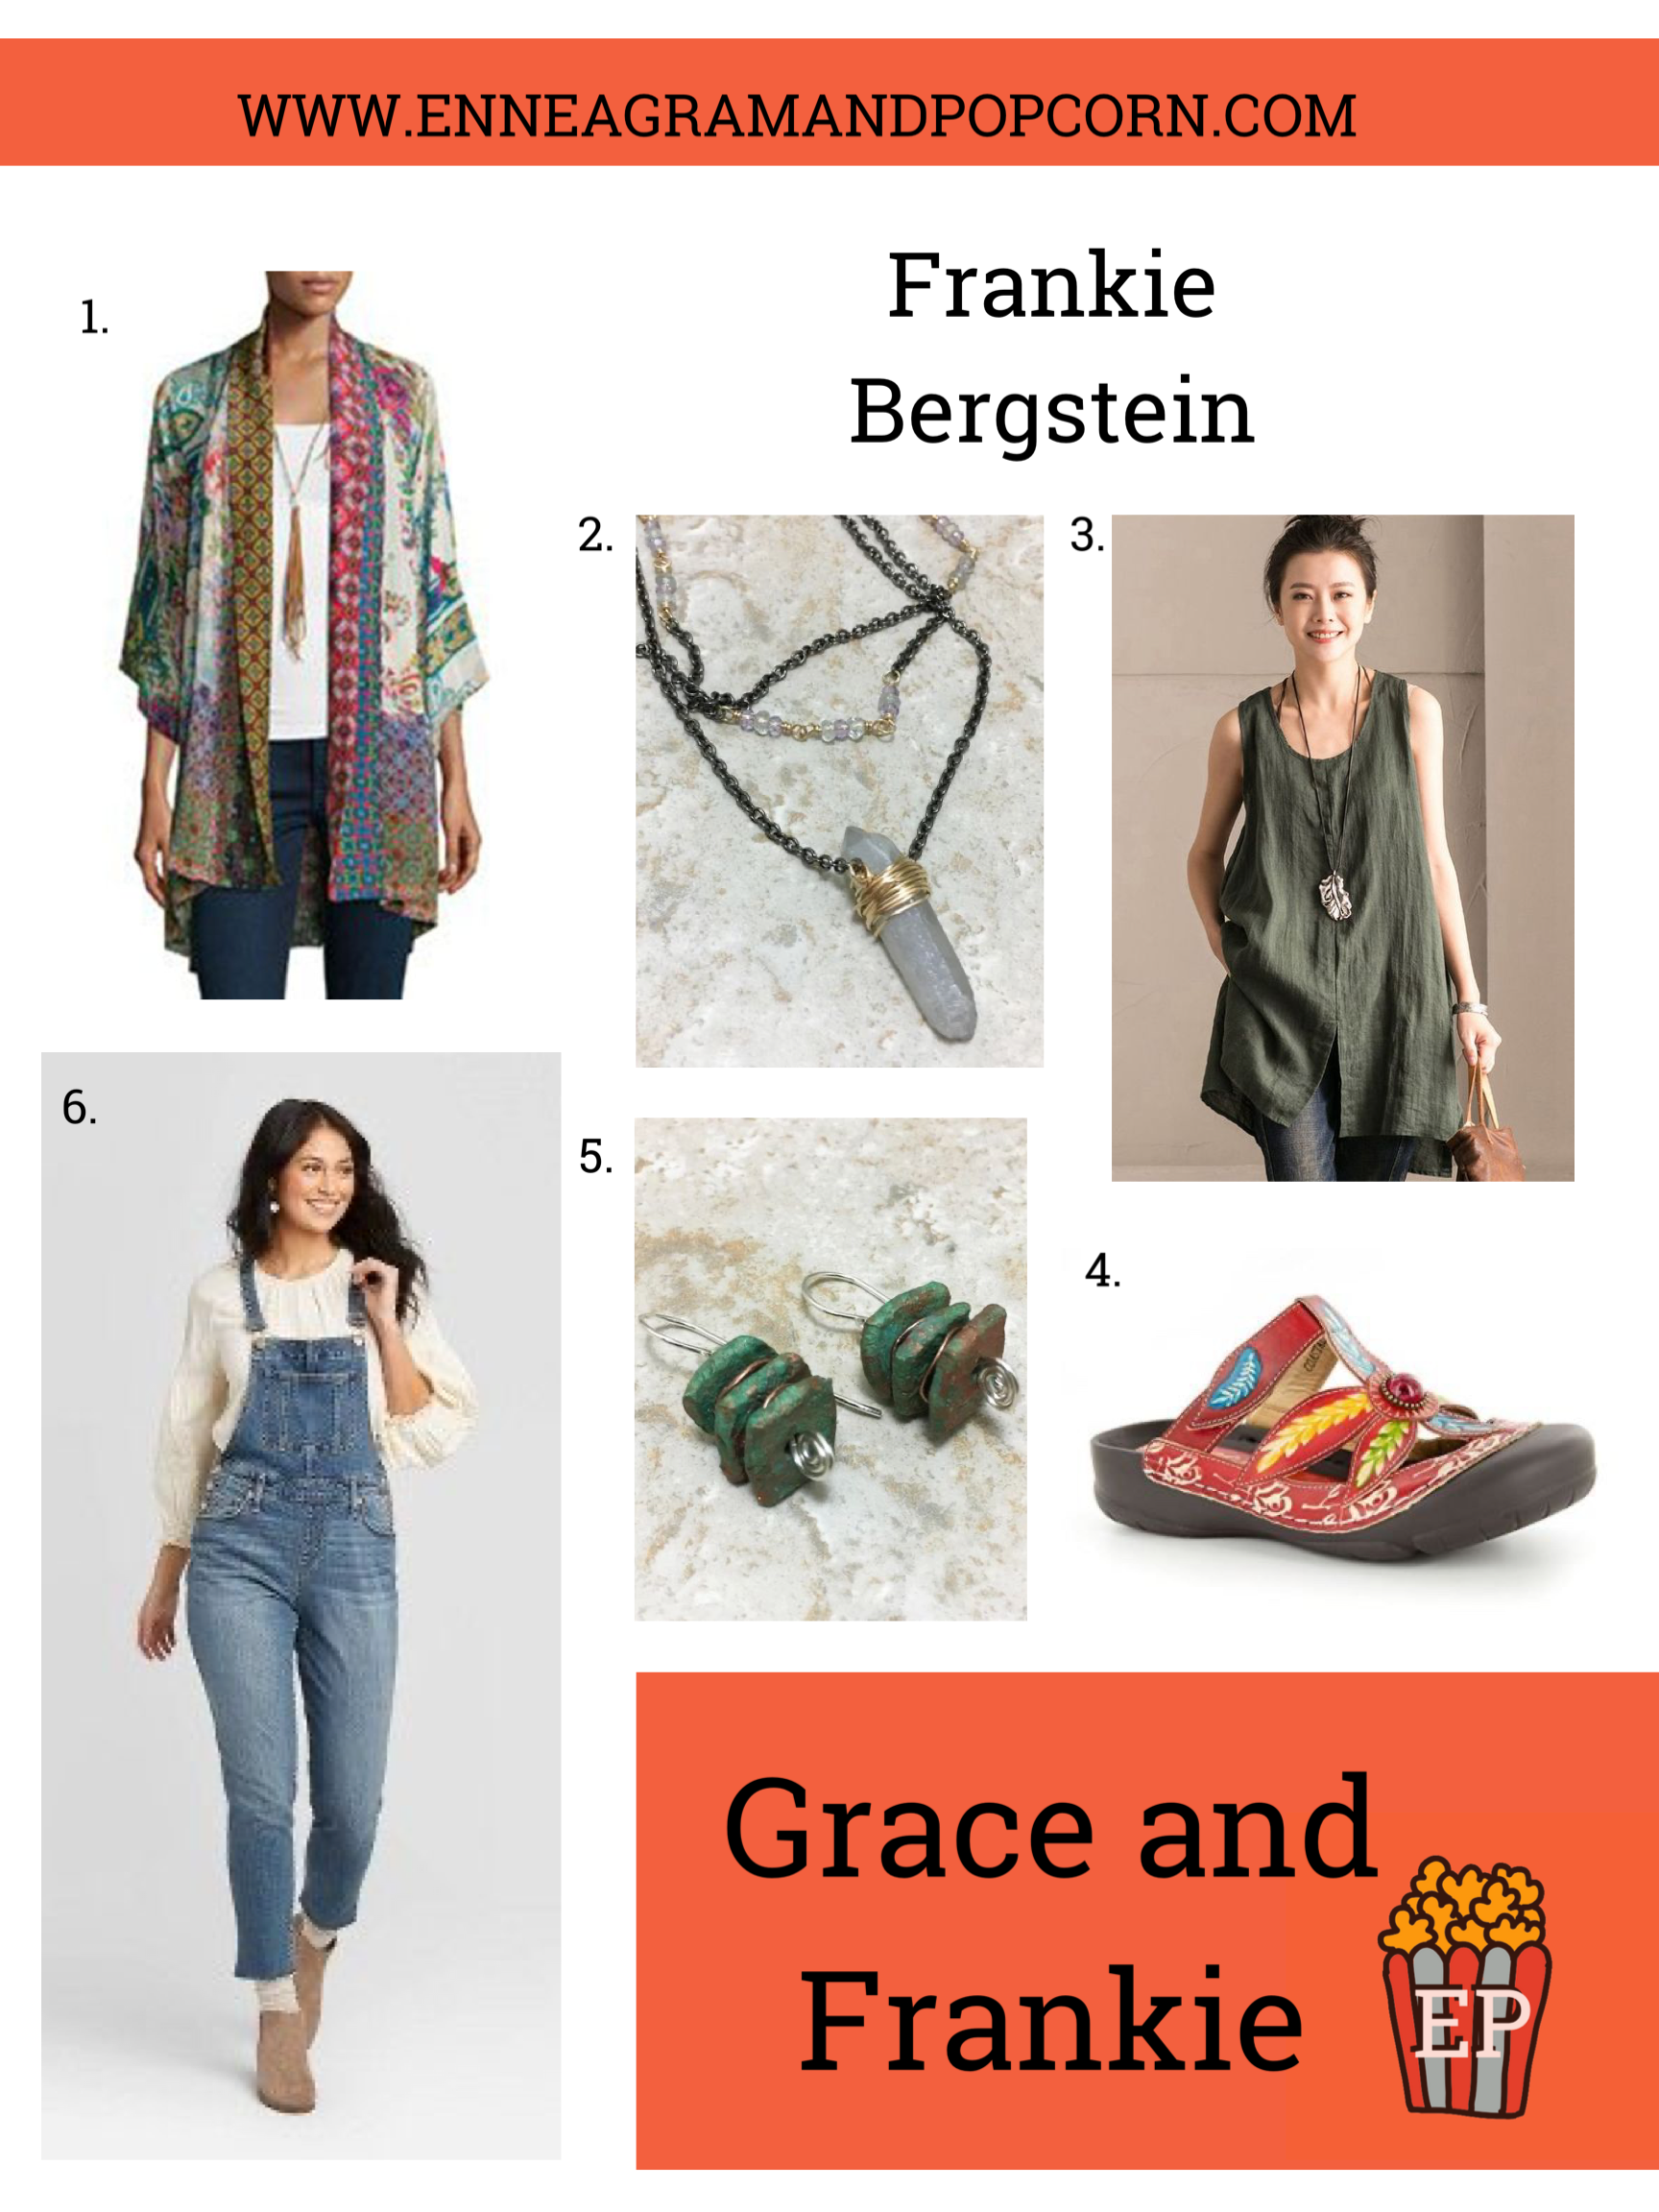 Grace And Frankie Inspired Fashion Enneagram And Popcorn